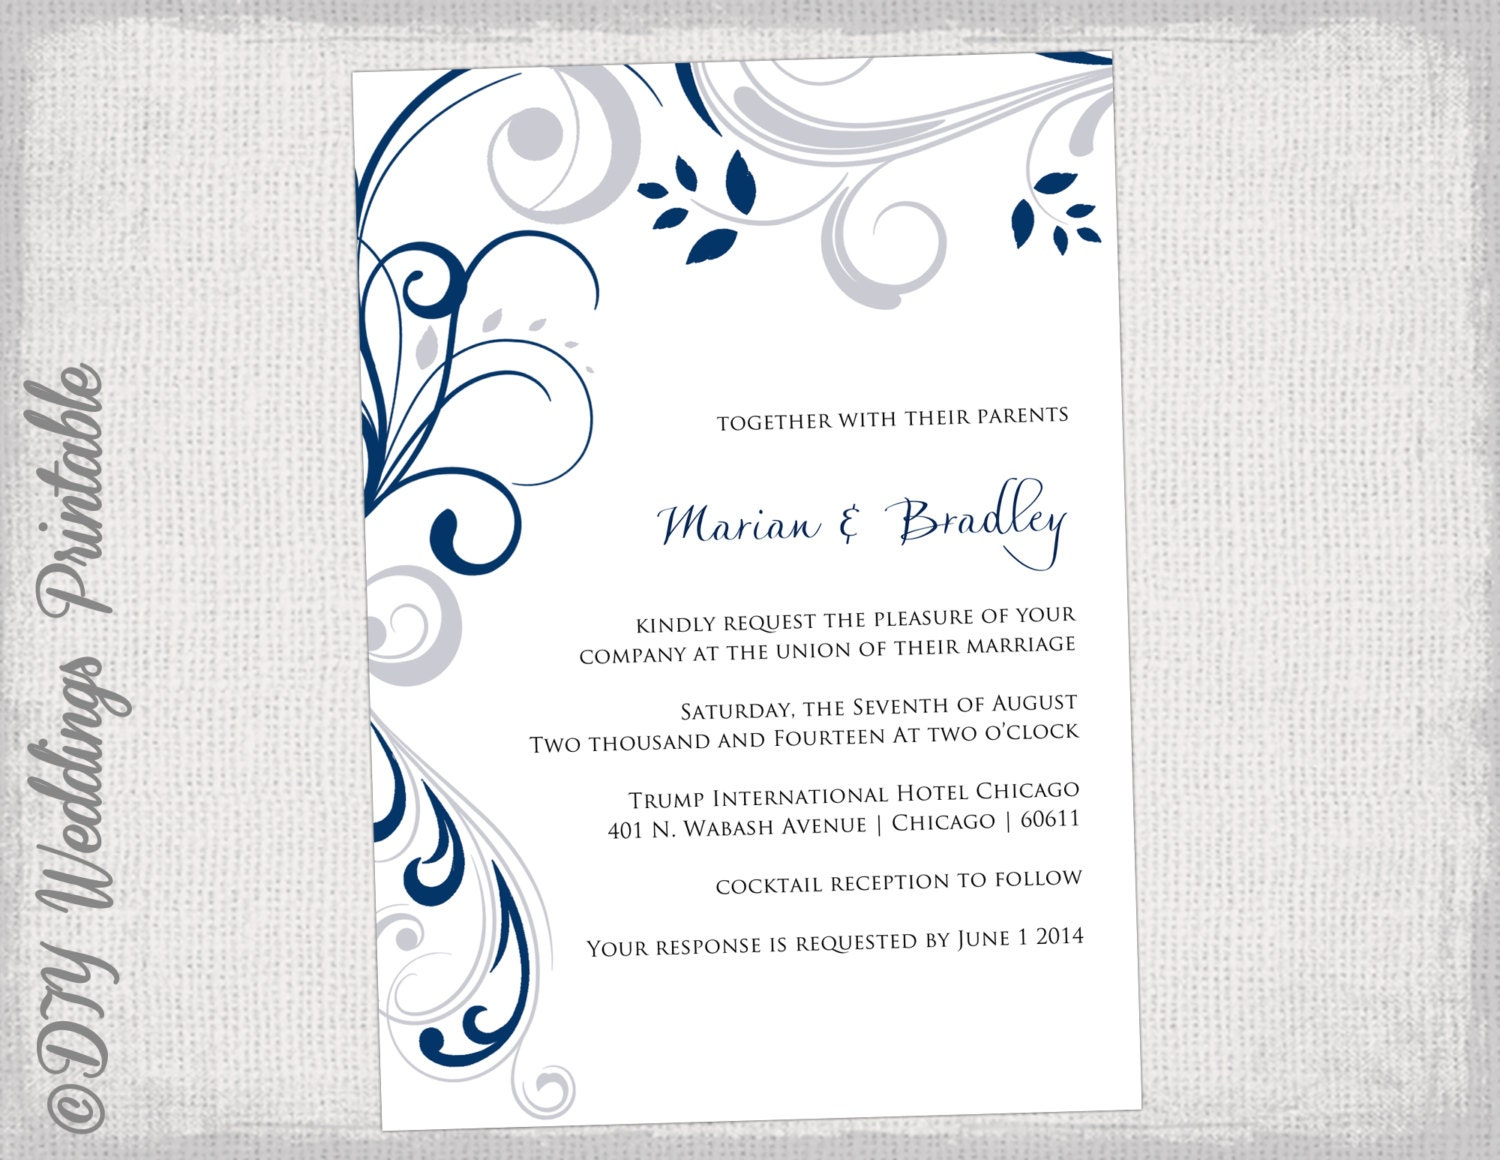 Silver Wedding Invitations: Printable Wedding Invitation Templates Silver Gray And Navy